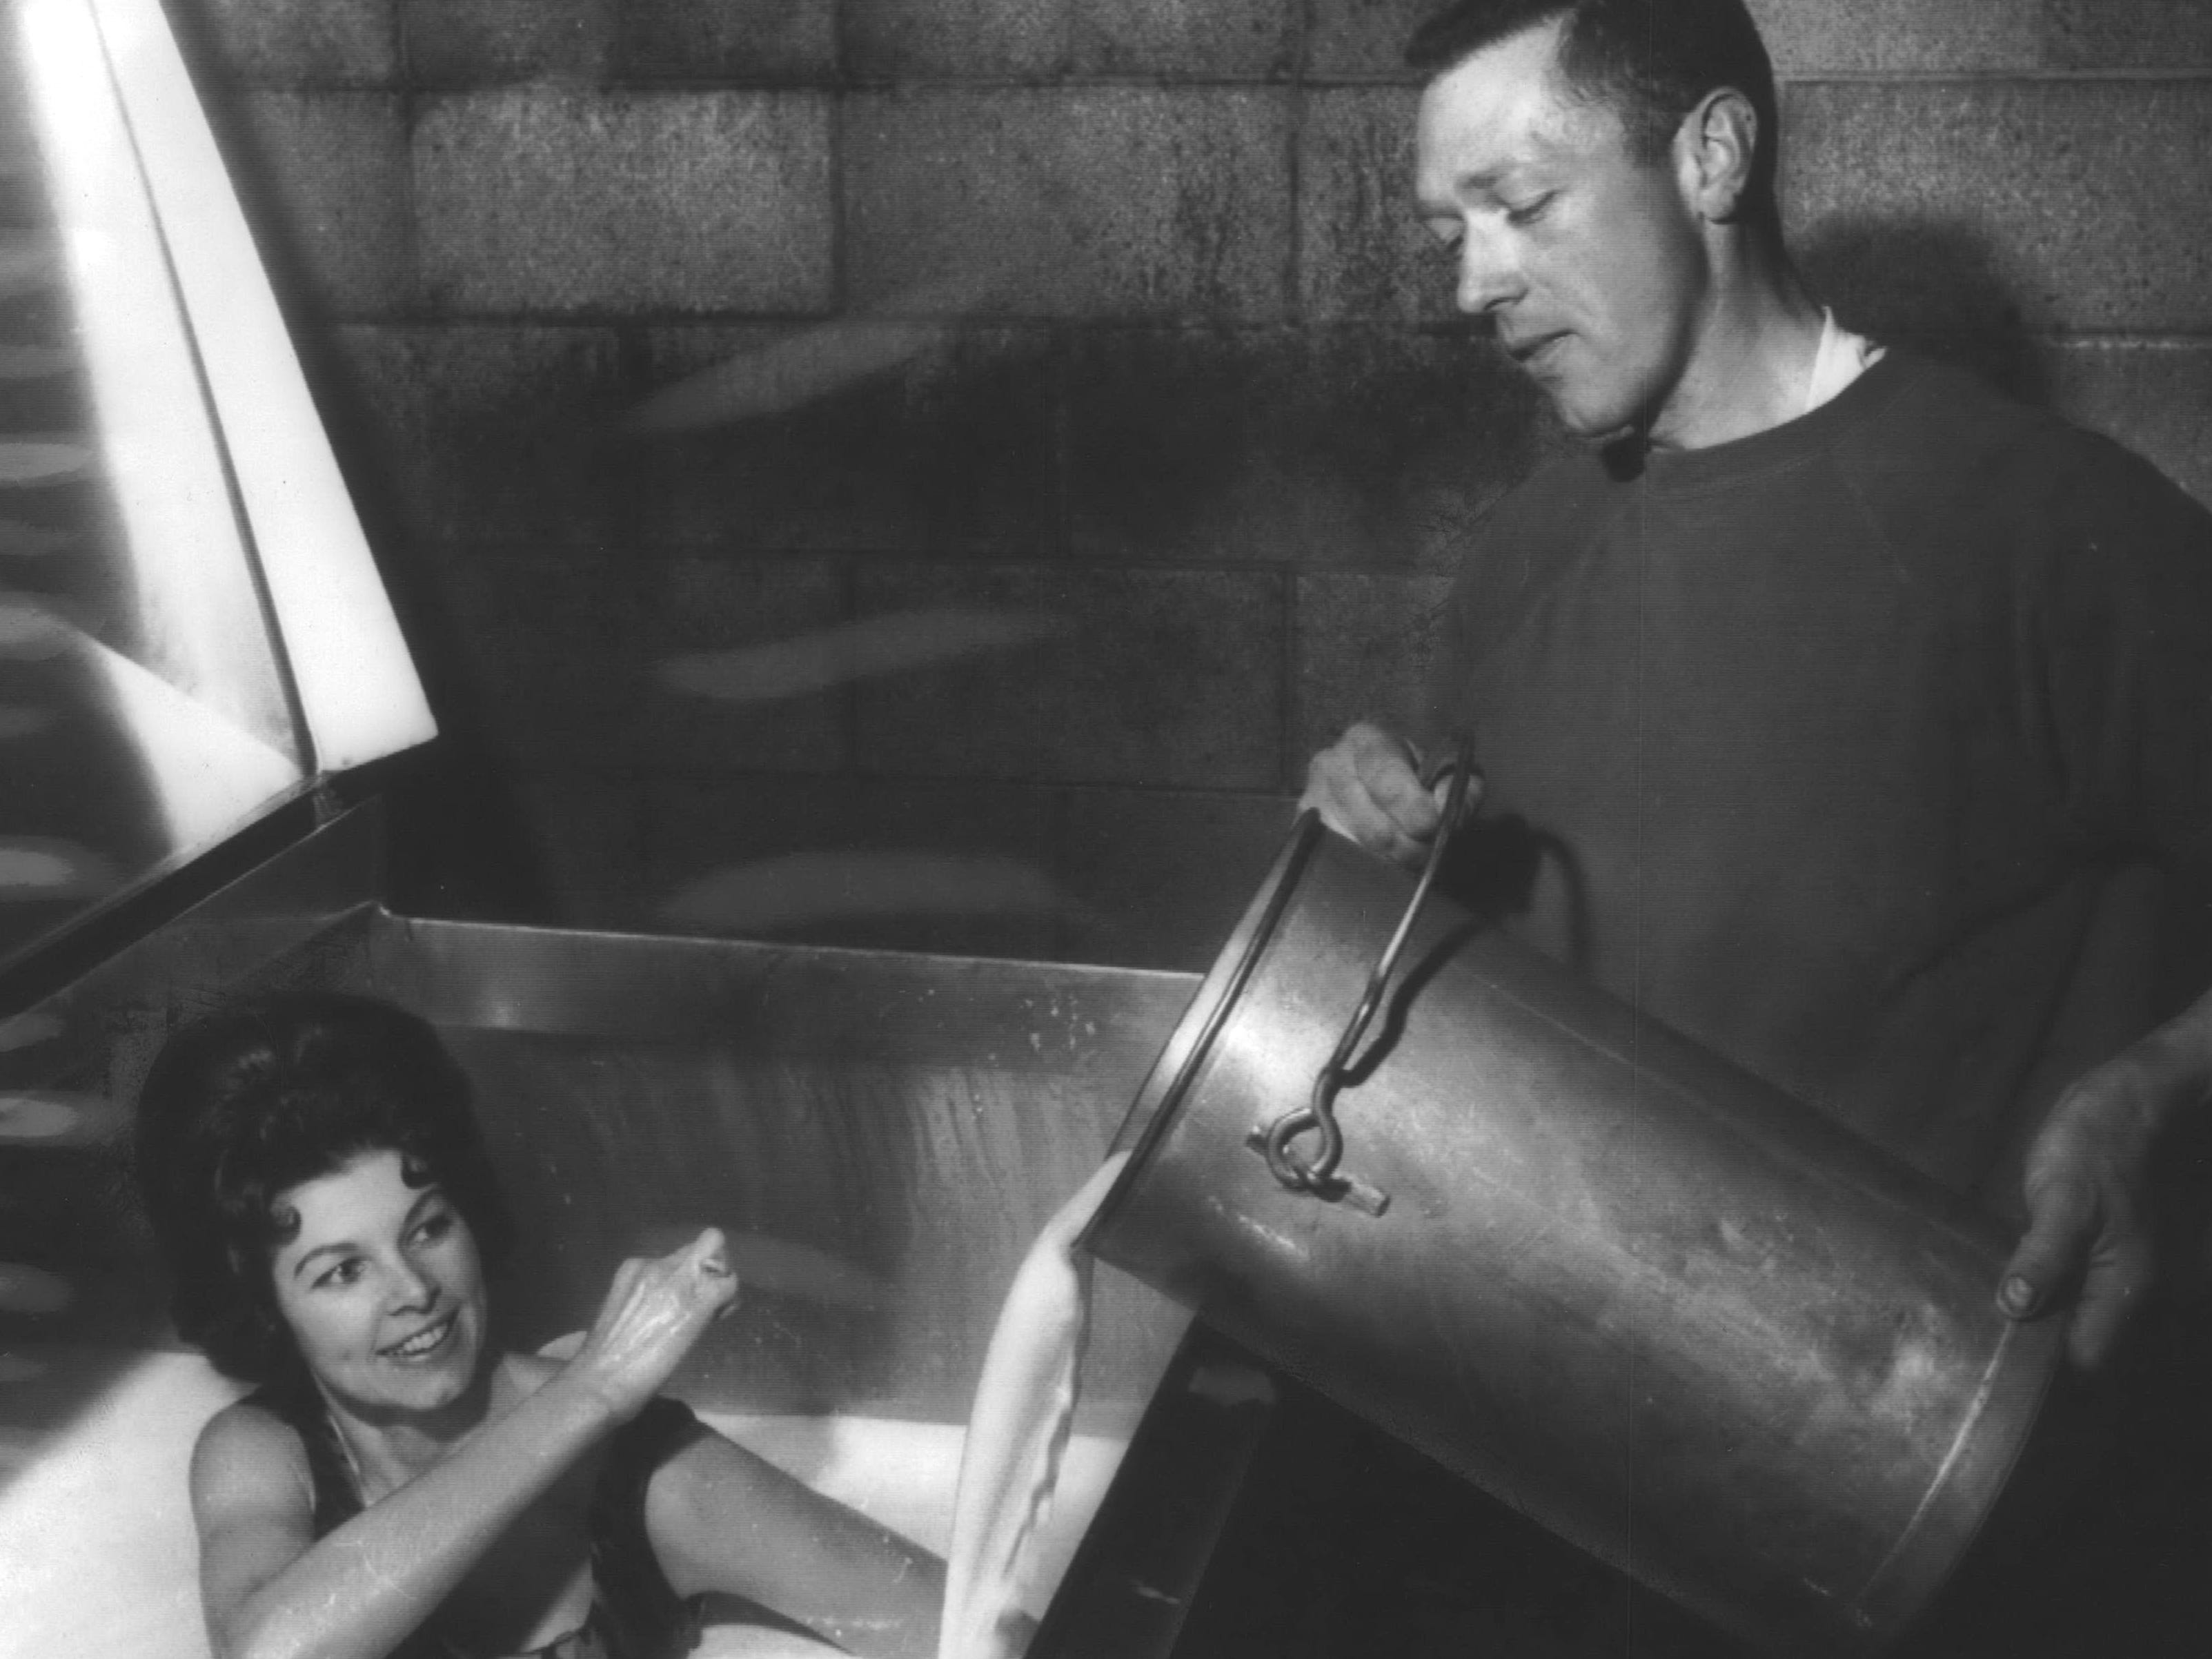 1967: National Farmers Organization members Mr. and Mrs. Dodridge Brooks of Waupaca had plenty of milk to spare because they were participating in the milk strike and holding back their supply in hopes that dairy farmers would receive a better price for their milk. Mrs. Brooks decided to make use of the extra milk by taking a bath in their holding tank. While she scrubbed, her husband poured in more warm milk.